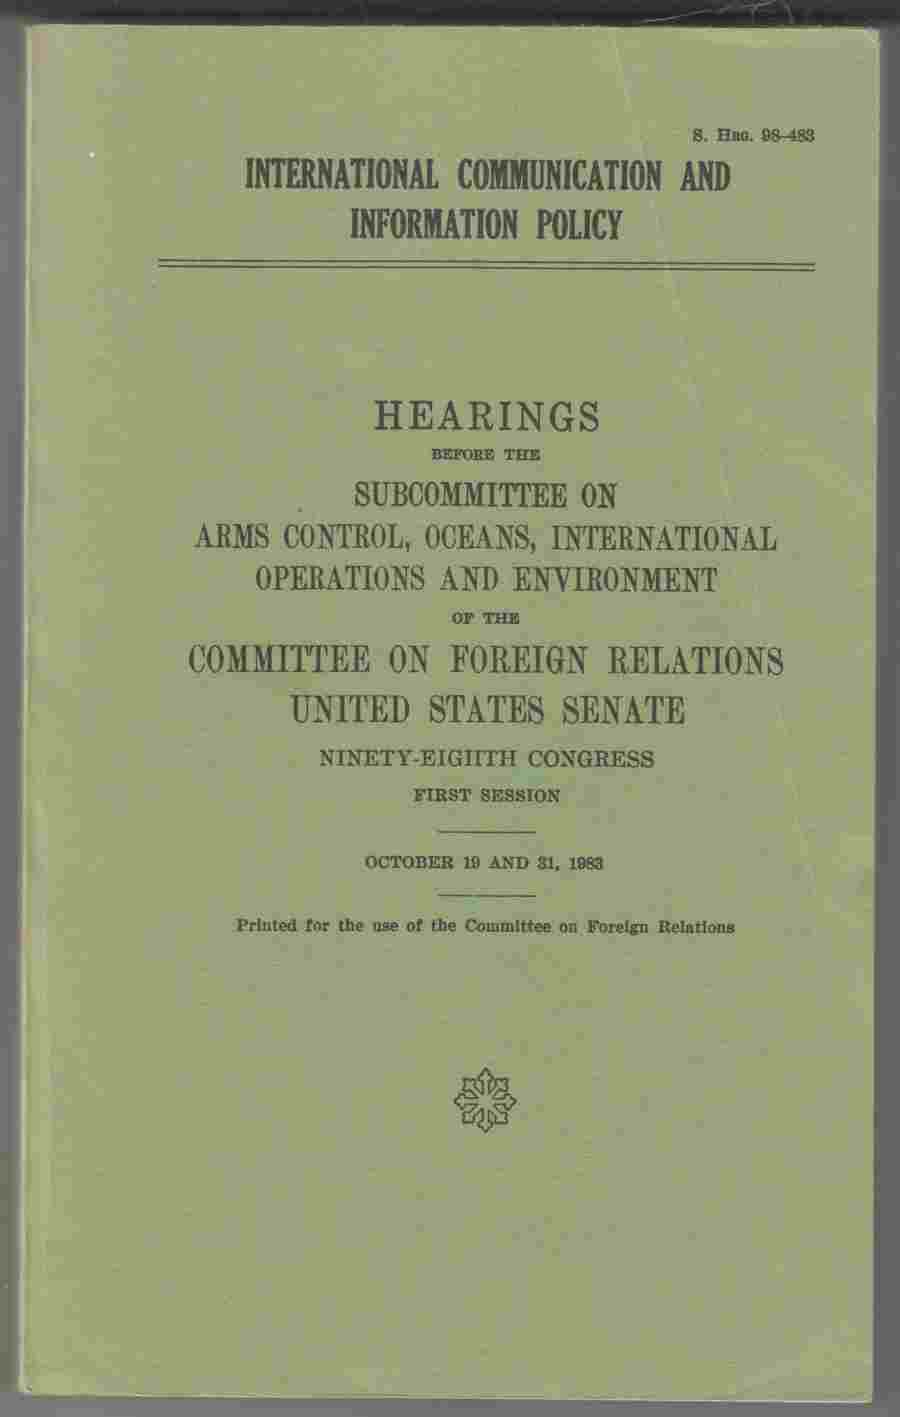 Image for International Communication and Information Policy Hearings before the Subcommittee on Arms Control, Oceans, International Operations and Environment of the Committee on Foreign Relations United States Senate 98th Congress First Session